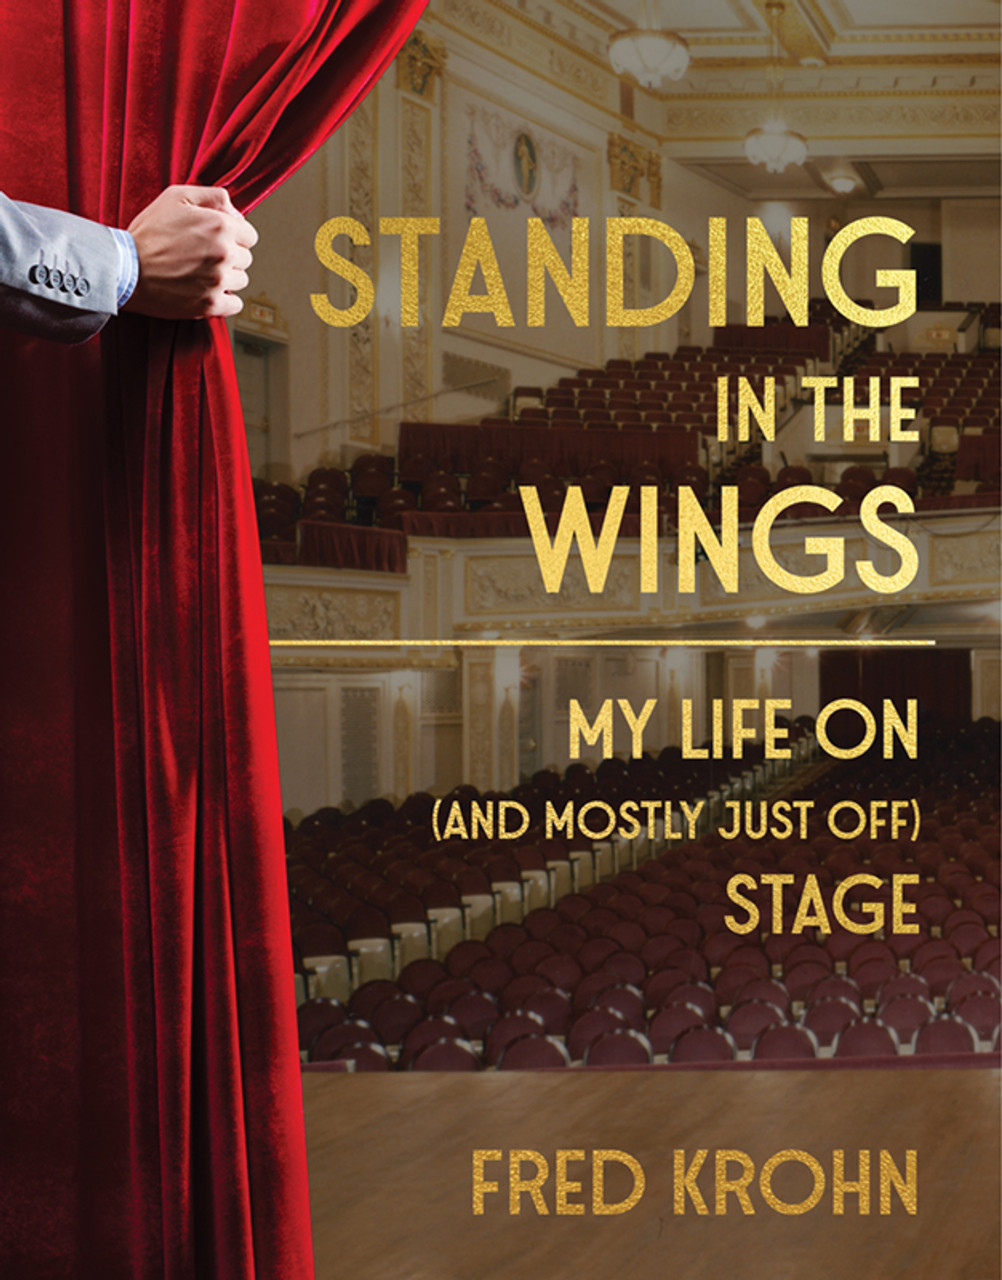 Standing in the Wings:My Life On (and mostly Just Off) Stage